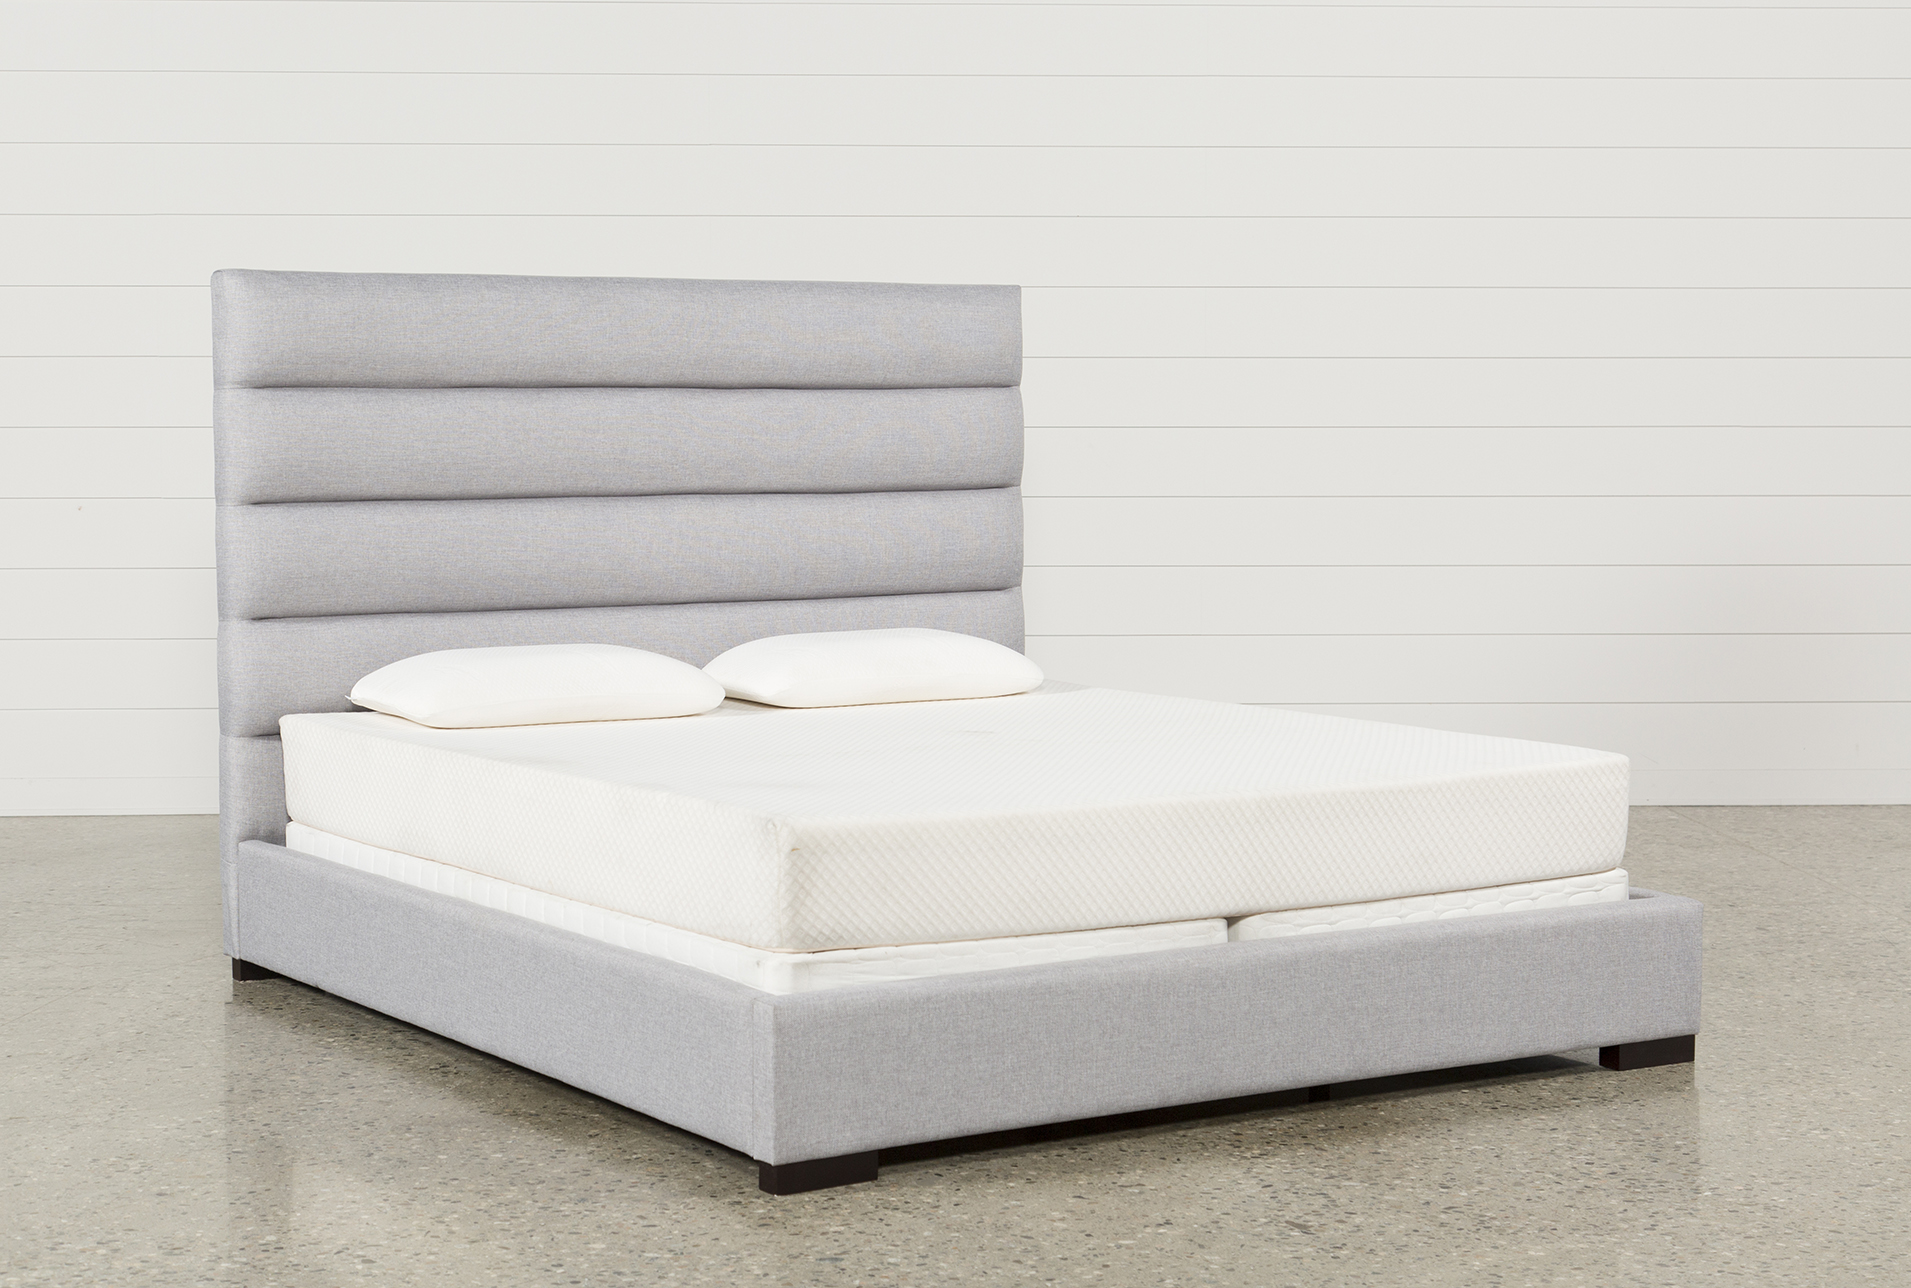 Hudson Queen Upholstered Platform Bed (Qty: 1) Has Been Successfully Added  To Your Cart.